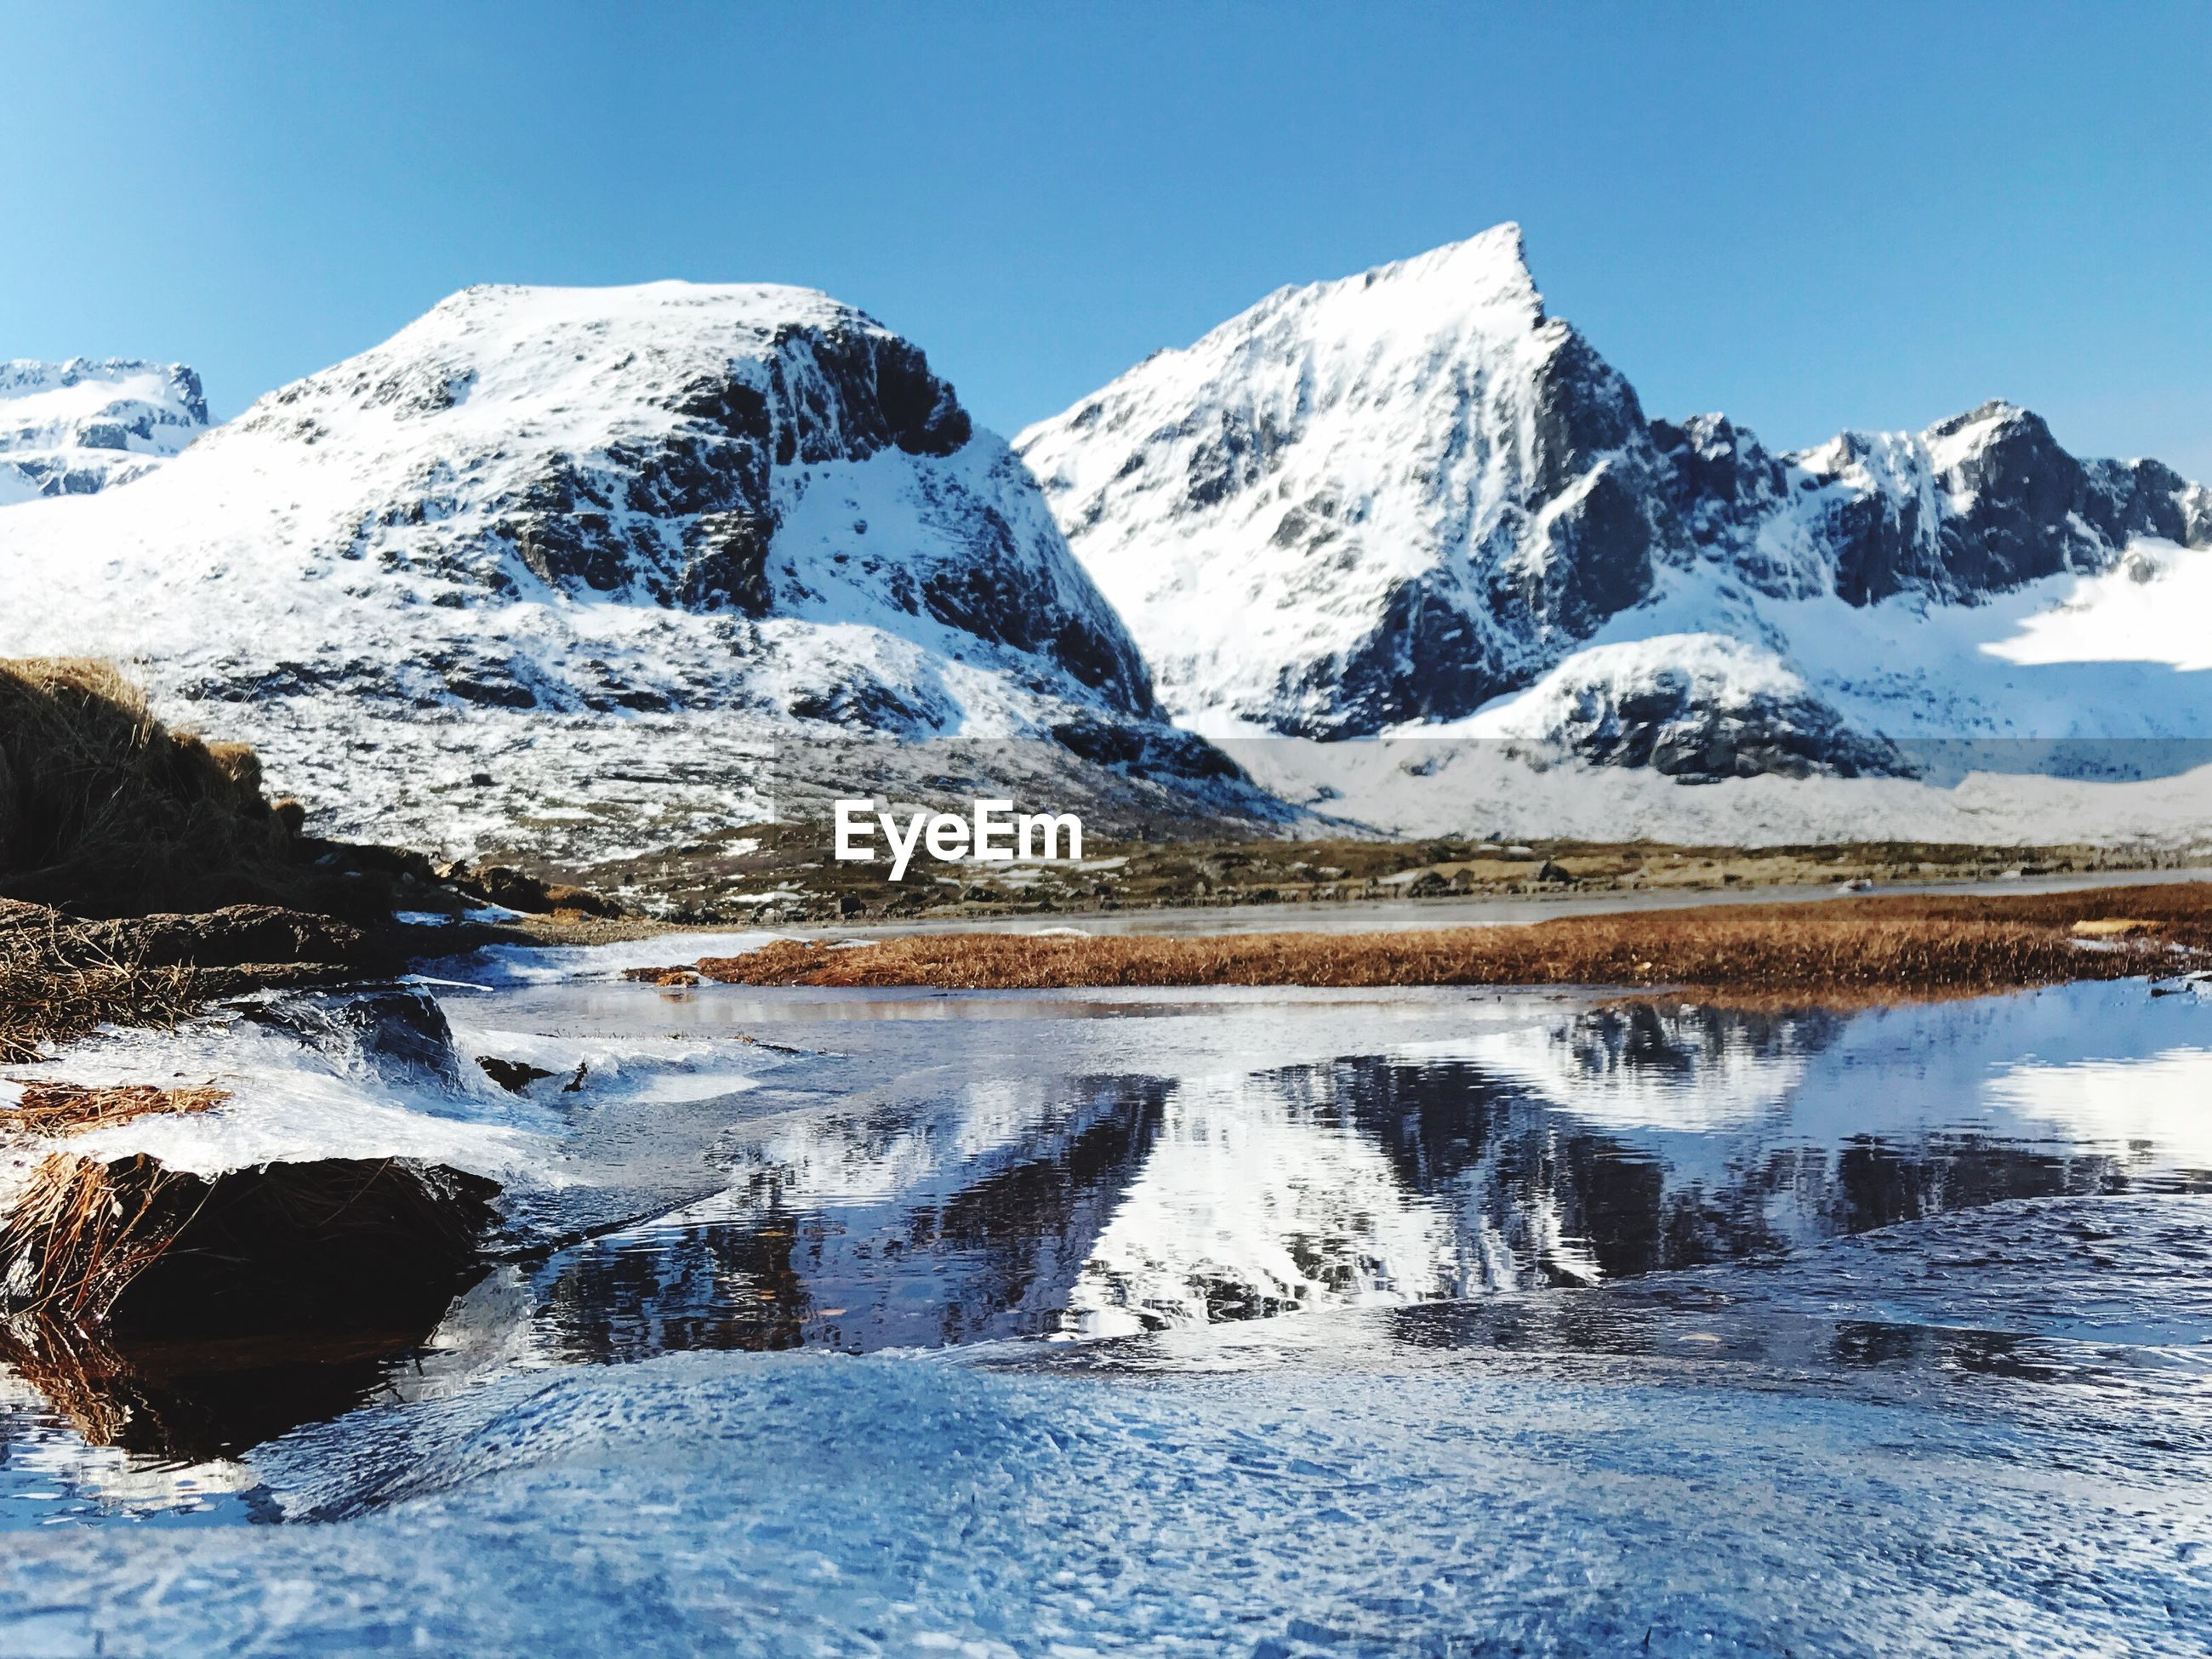 SCENIC VIEW OF FROZEN LAKE AGAINST SNOWCAPPED MOUNTAINS